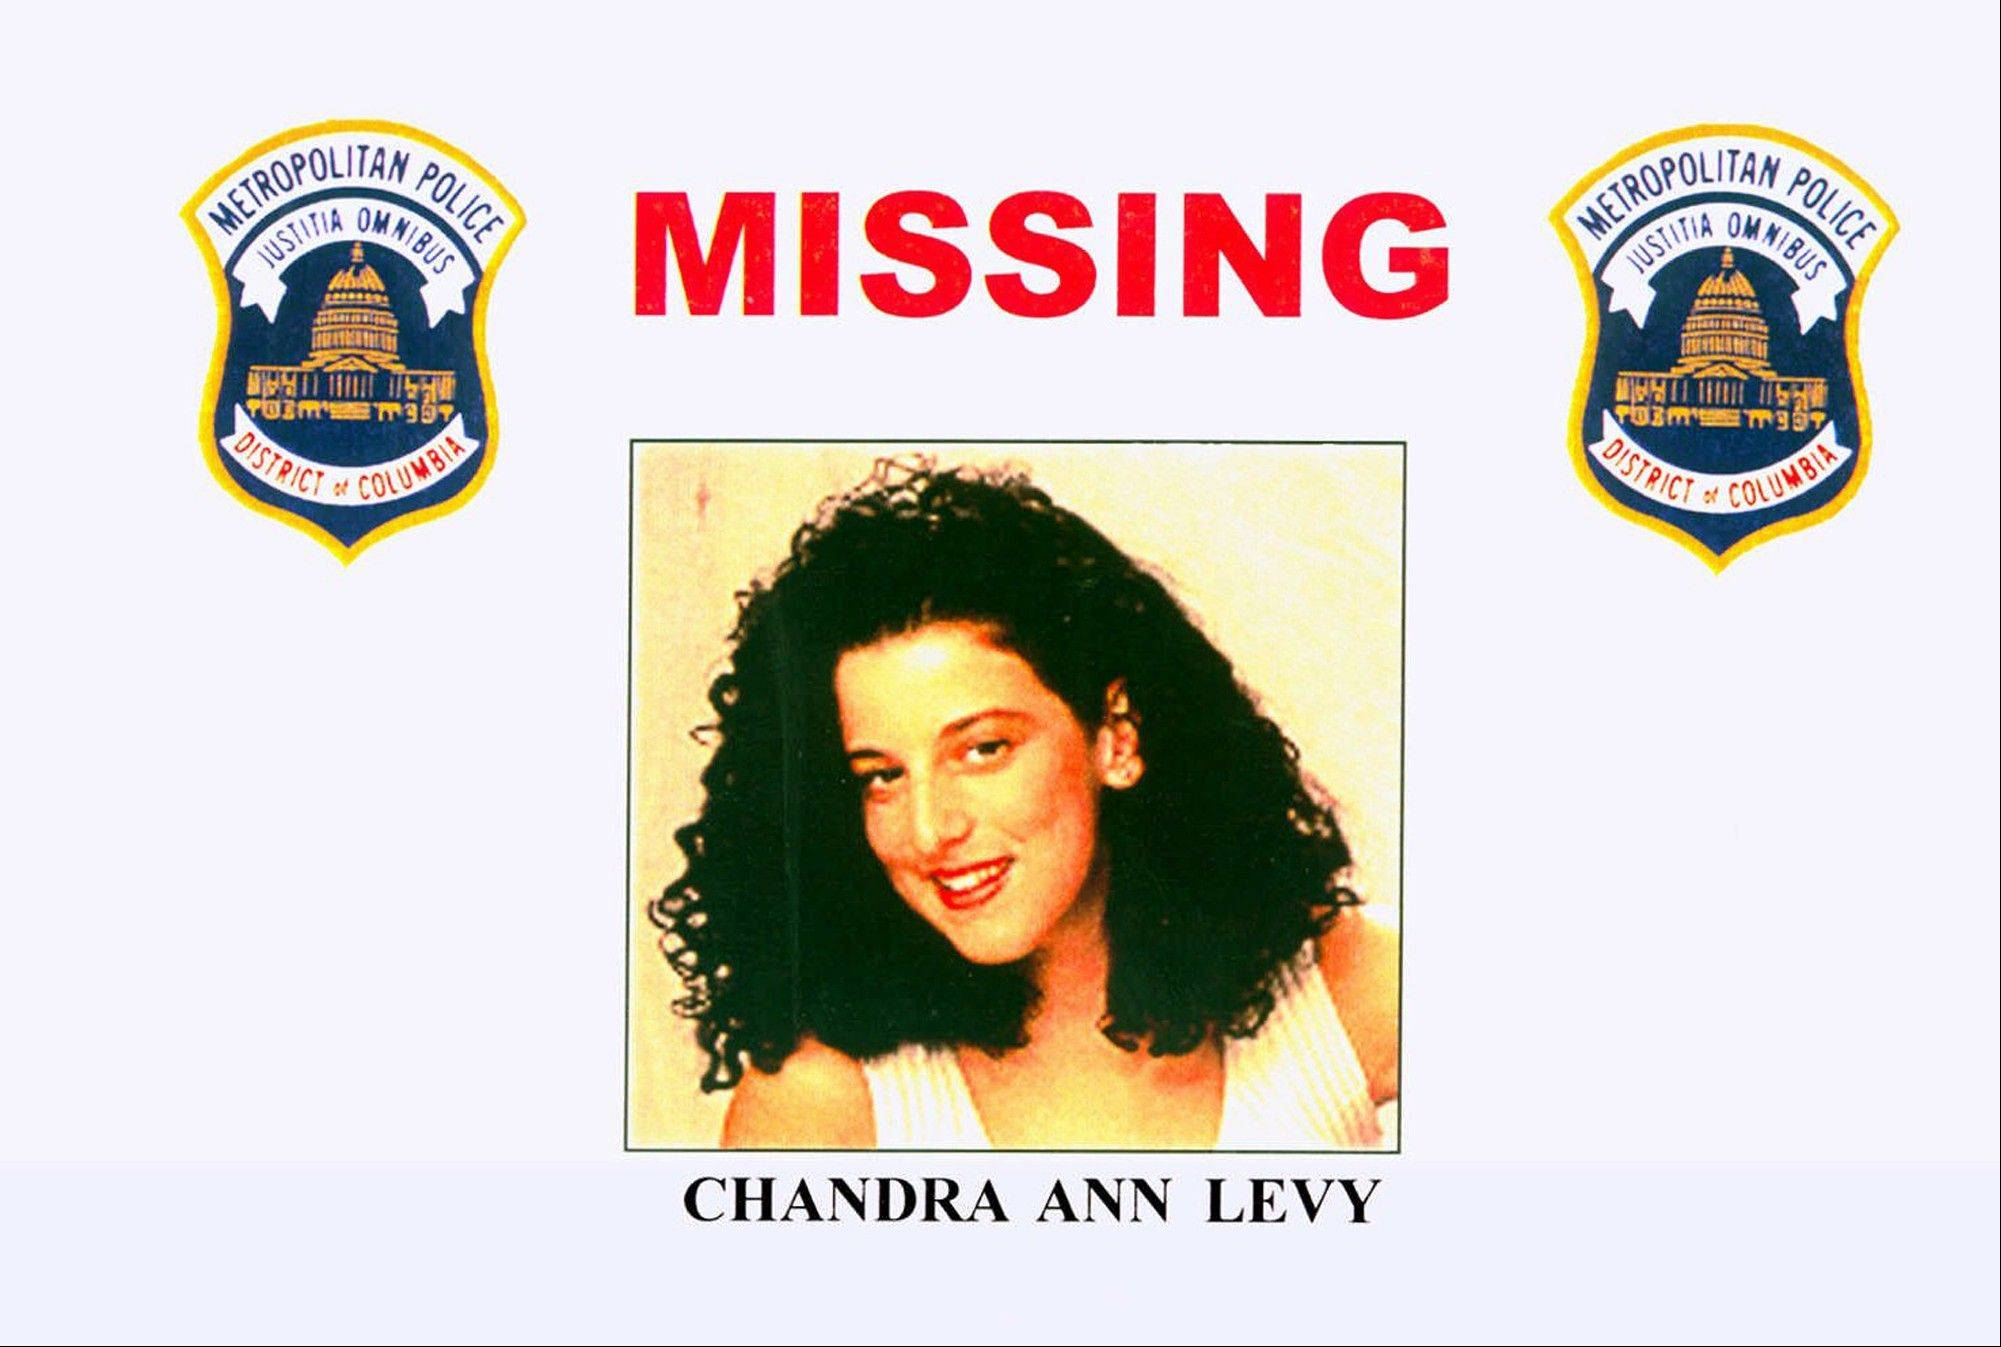 This 2001 file photo provided by the Washington Police Department shows the missing poster of Chandra Ann Levy, of Modesto, Calif. A judge is holding secret hearings in the case of the man convicted in the 2001 killing of Washington intern Levy. Neither prosecutors nor defense lawyers have revealed the purpose of the hearings, which have been taking place in Washington behind closed doors. Several media organizations, including The Associated Press, are petitioning to open the proceedings.